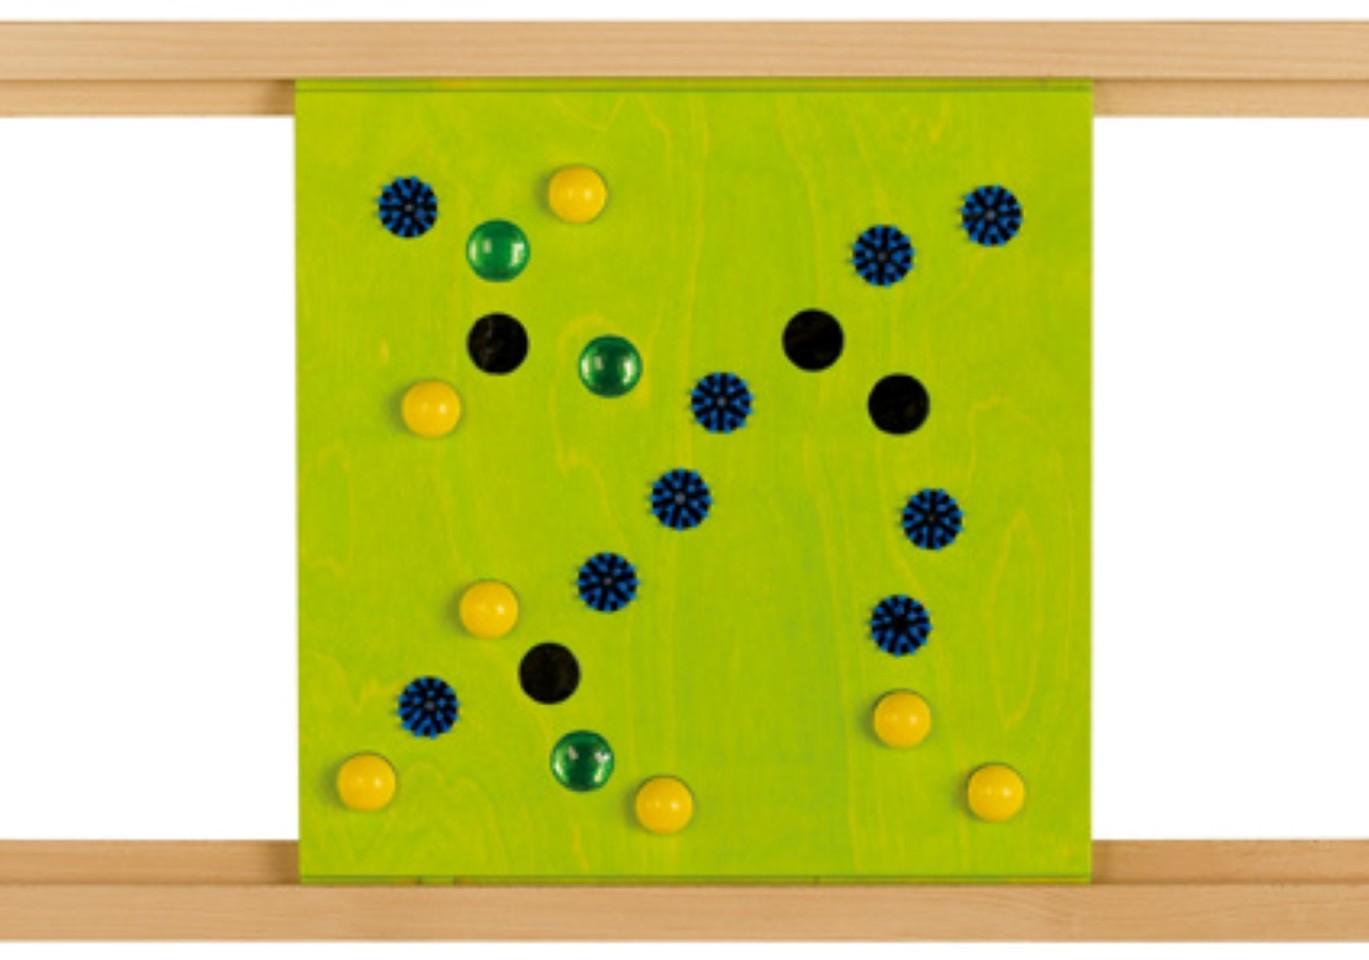 Brushes, Balls, and Mirrors Sensory Wall Activity Panel